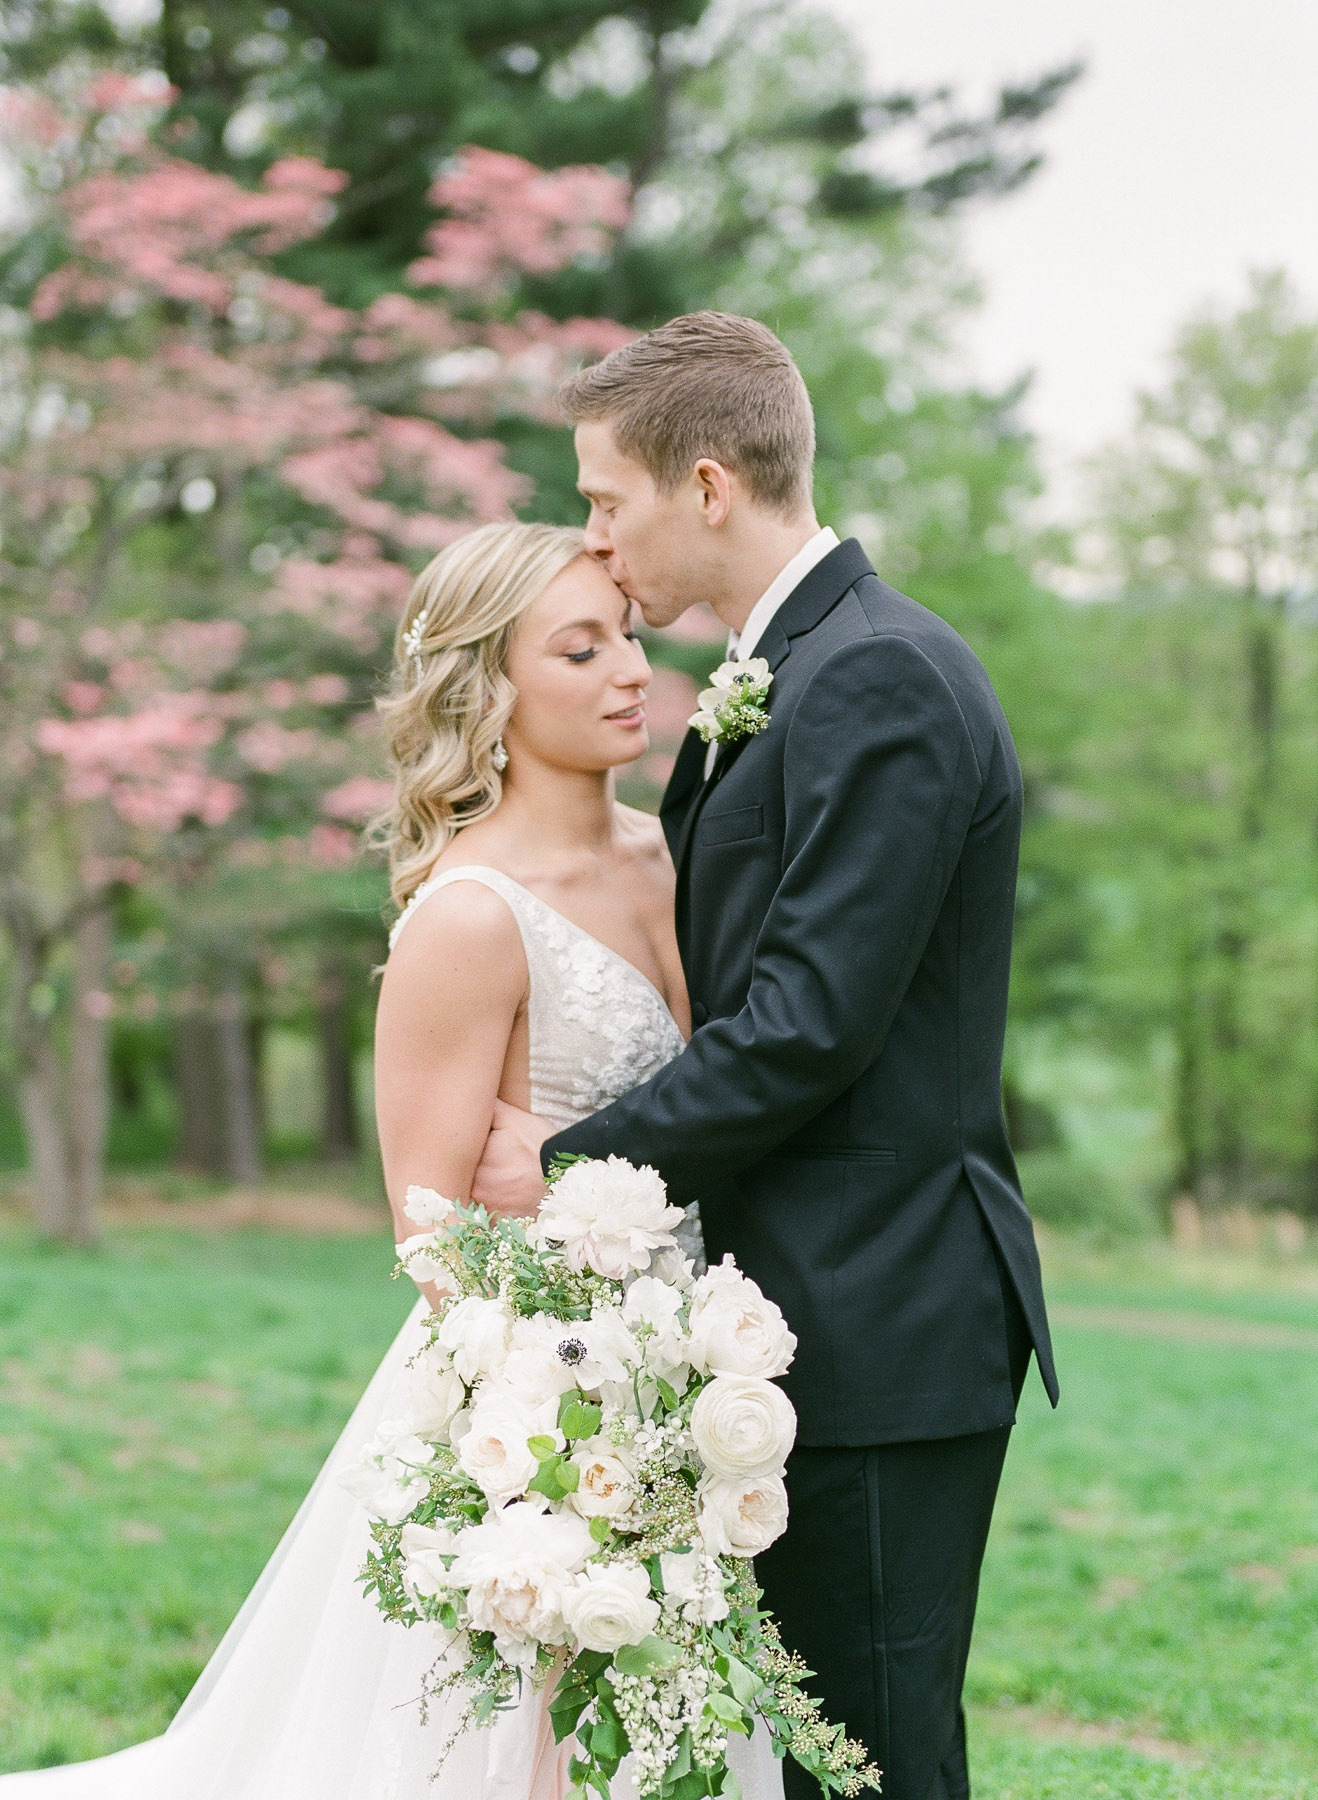 Blooming magnolia tree wedding photos